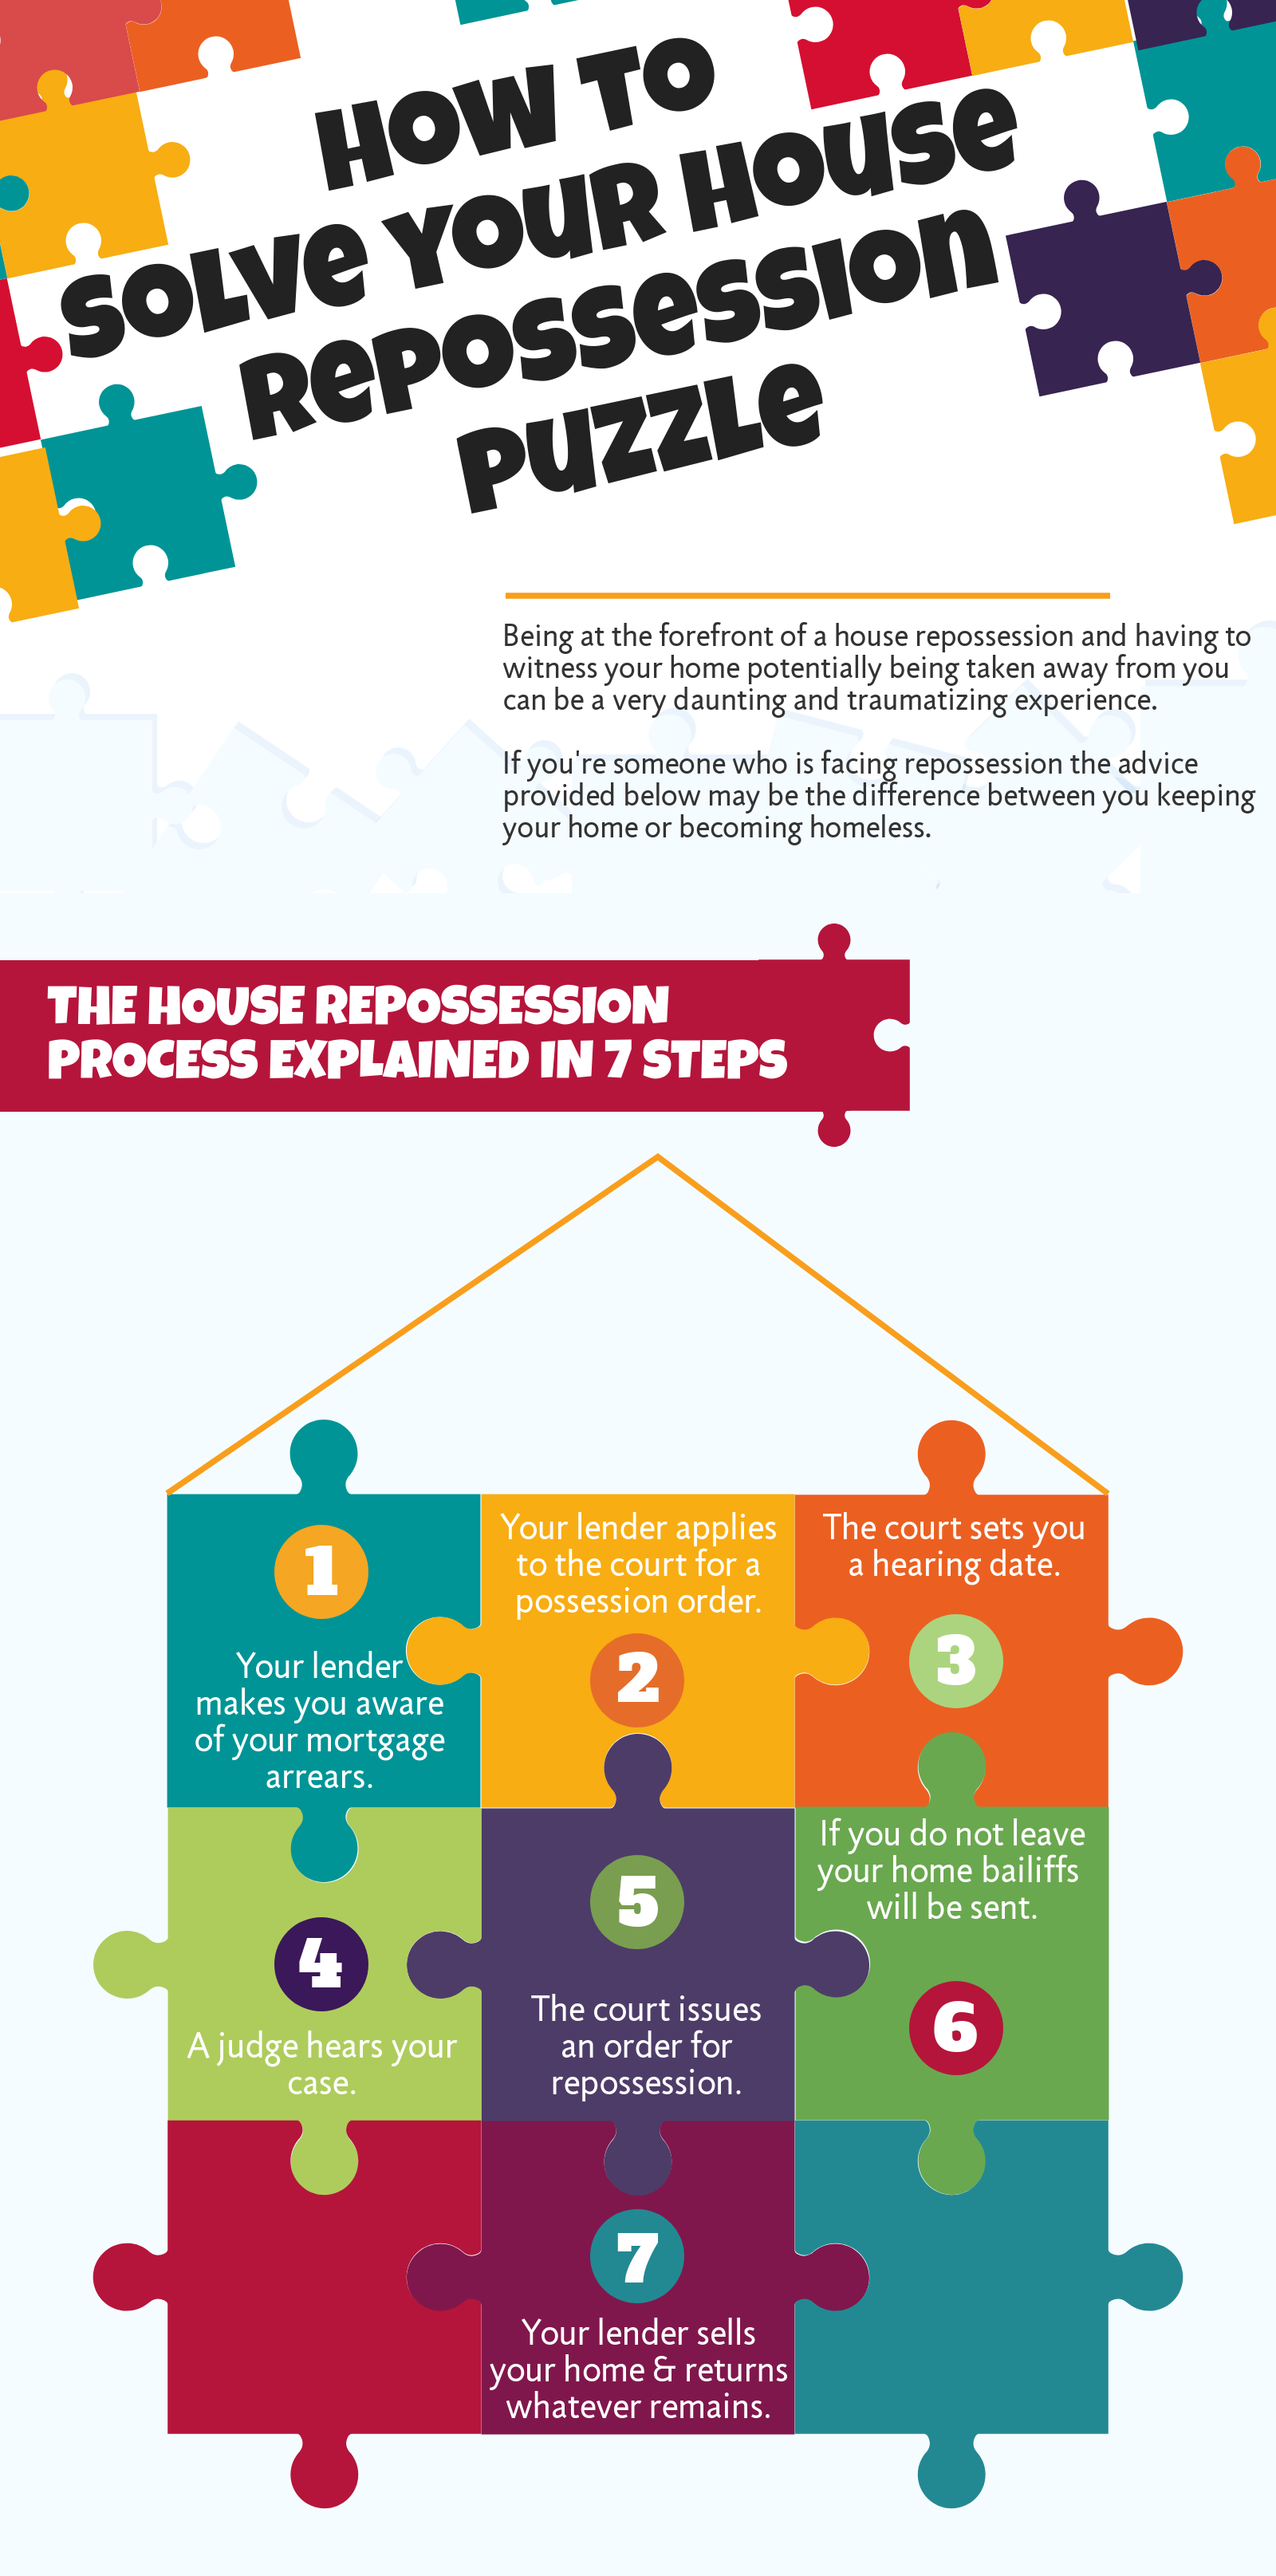 The house repossession process explained in 7 steps